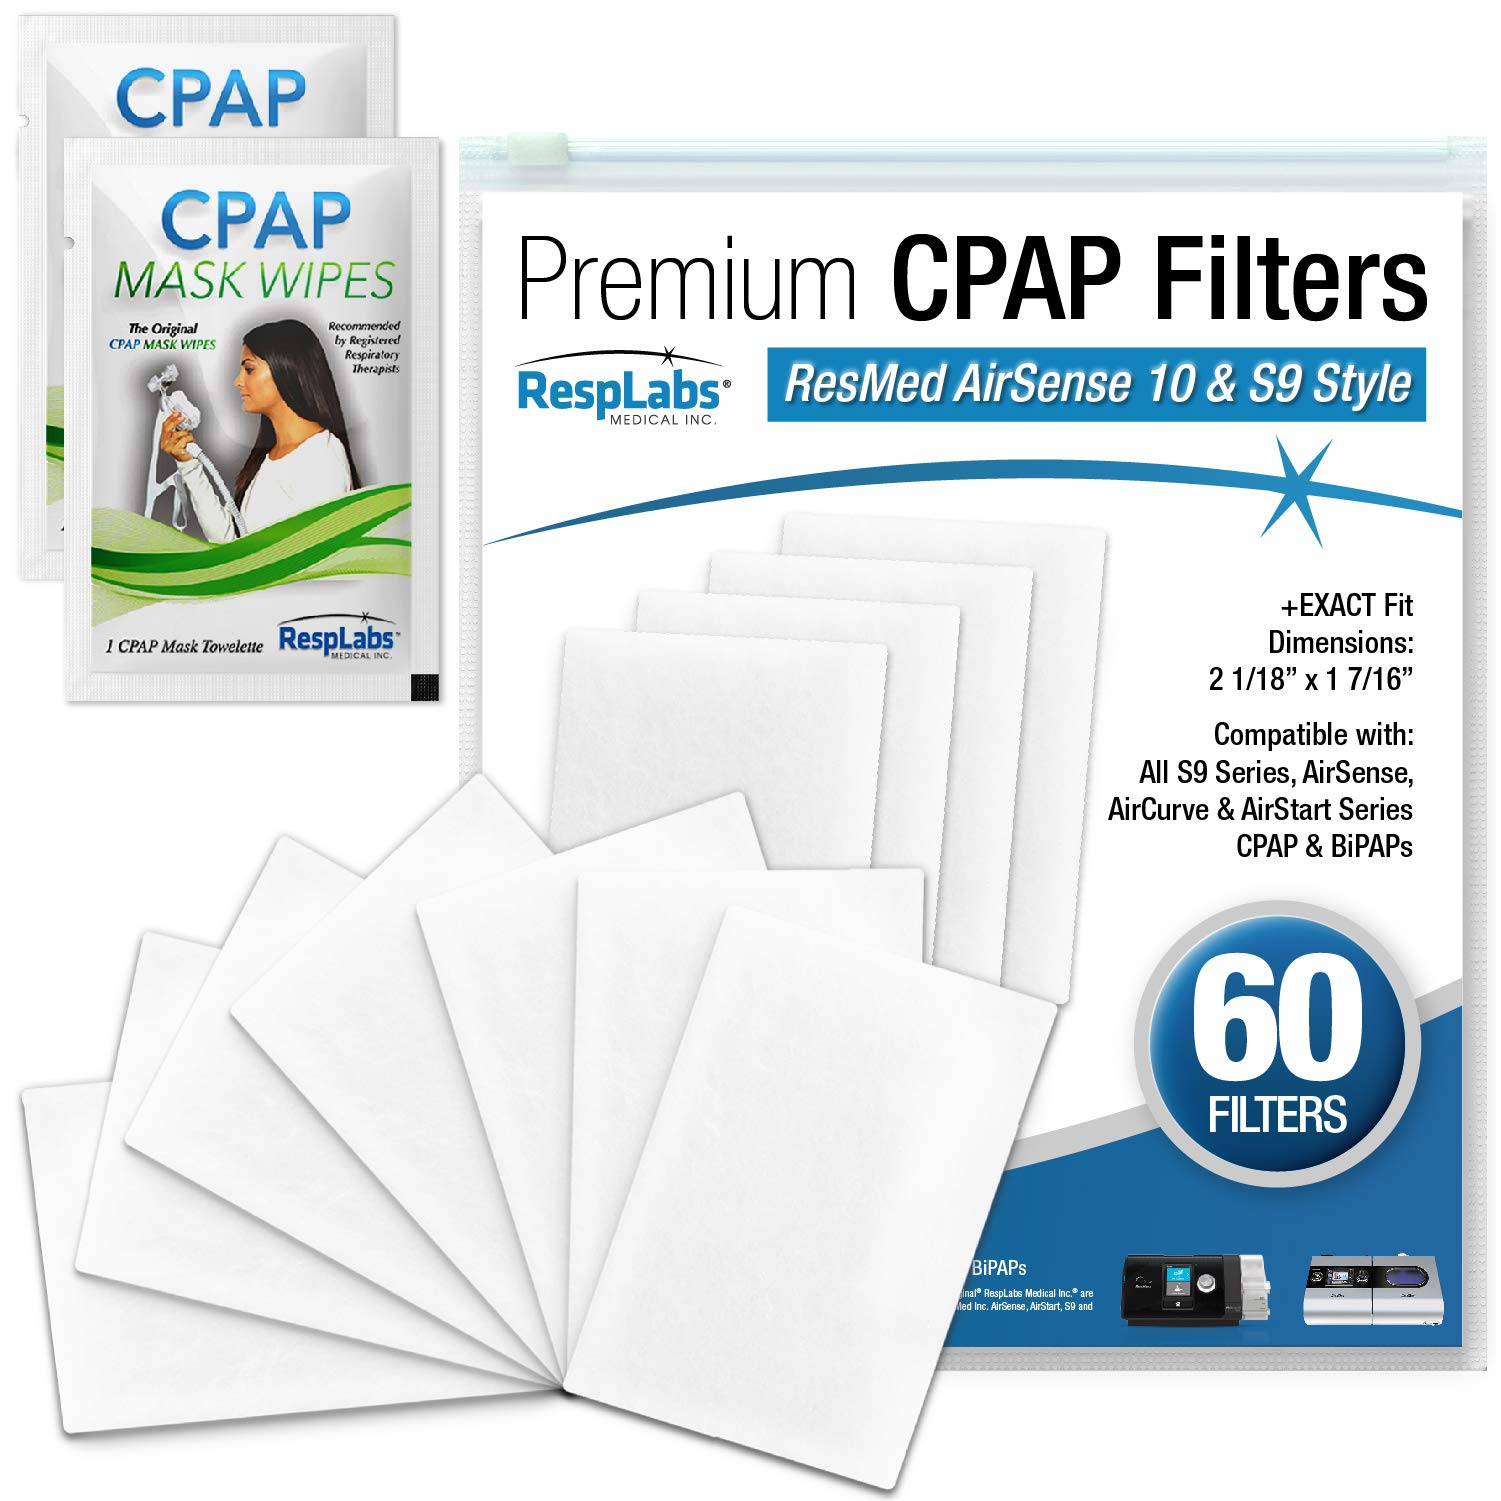 RespLabs CPAP Filters, 60 Pack for ResMed AirSense 10 & S9. Includes Replacement Filter Kit + 2 Travel Cleaning Wipes